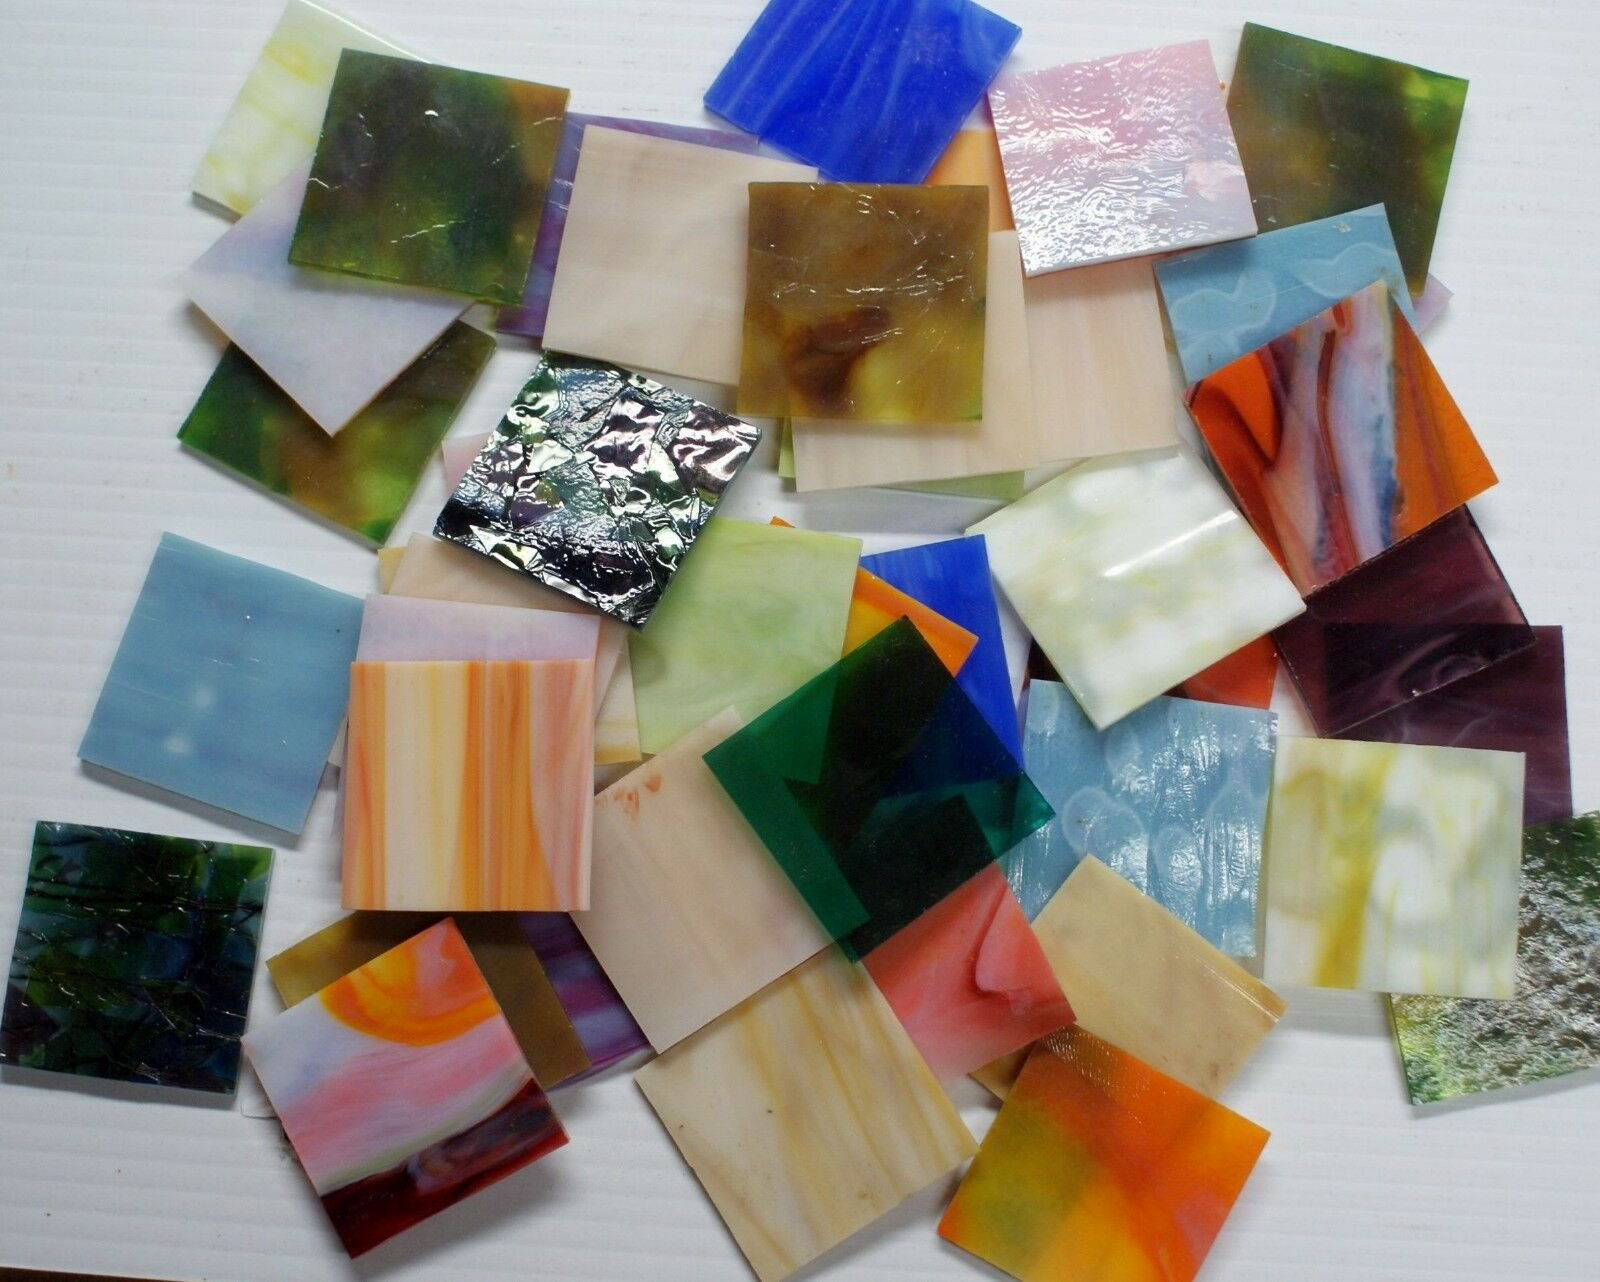 как выглядит NEW 15pcs not scrap STAINED GLASS STRIPS 8 x 2 SAMPLES UROBOROS hr mosaics фото